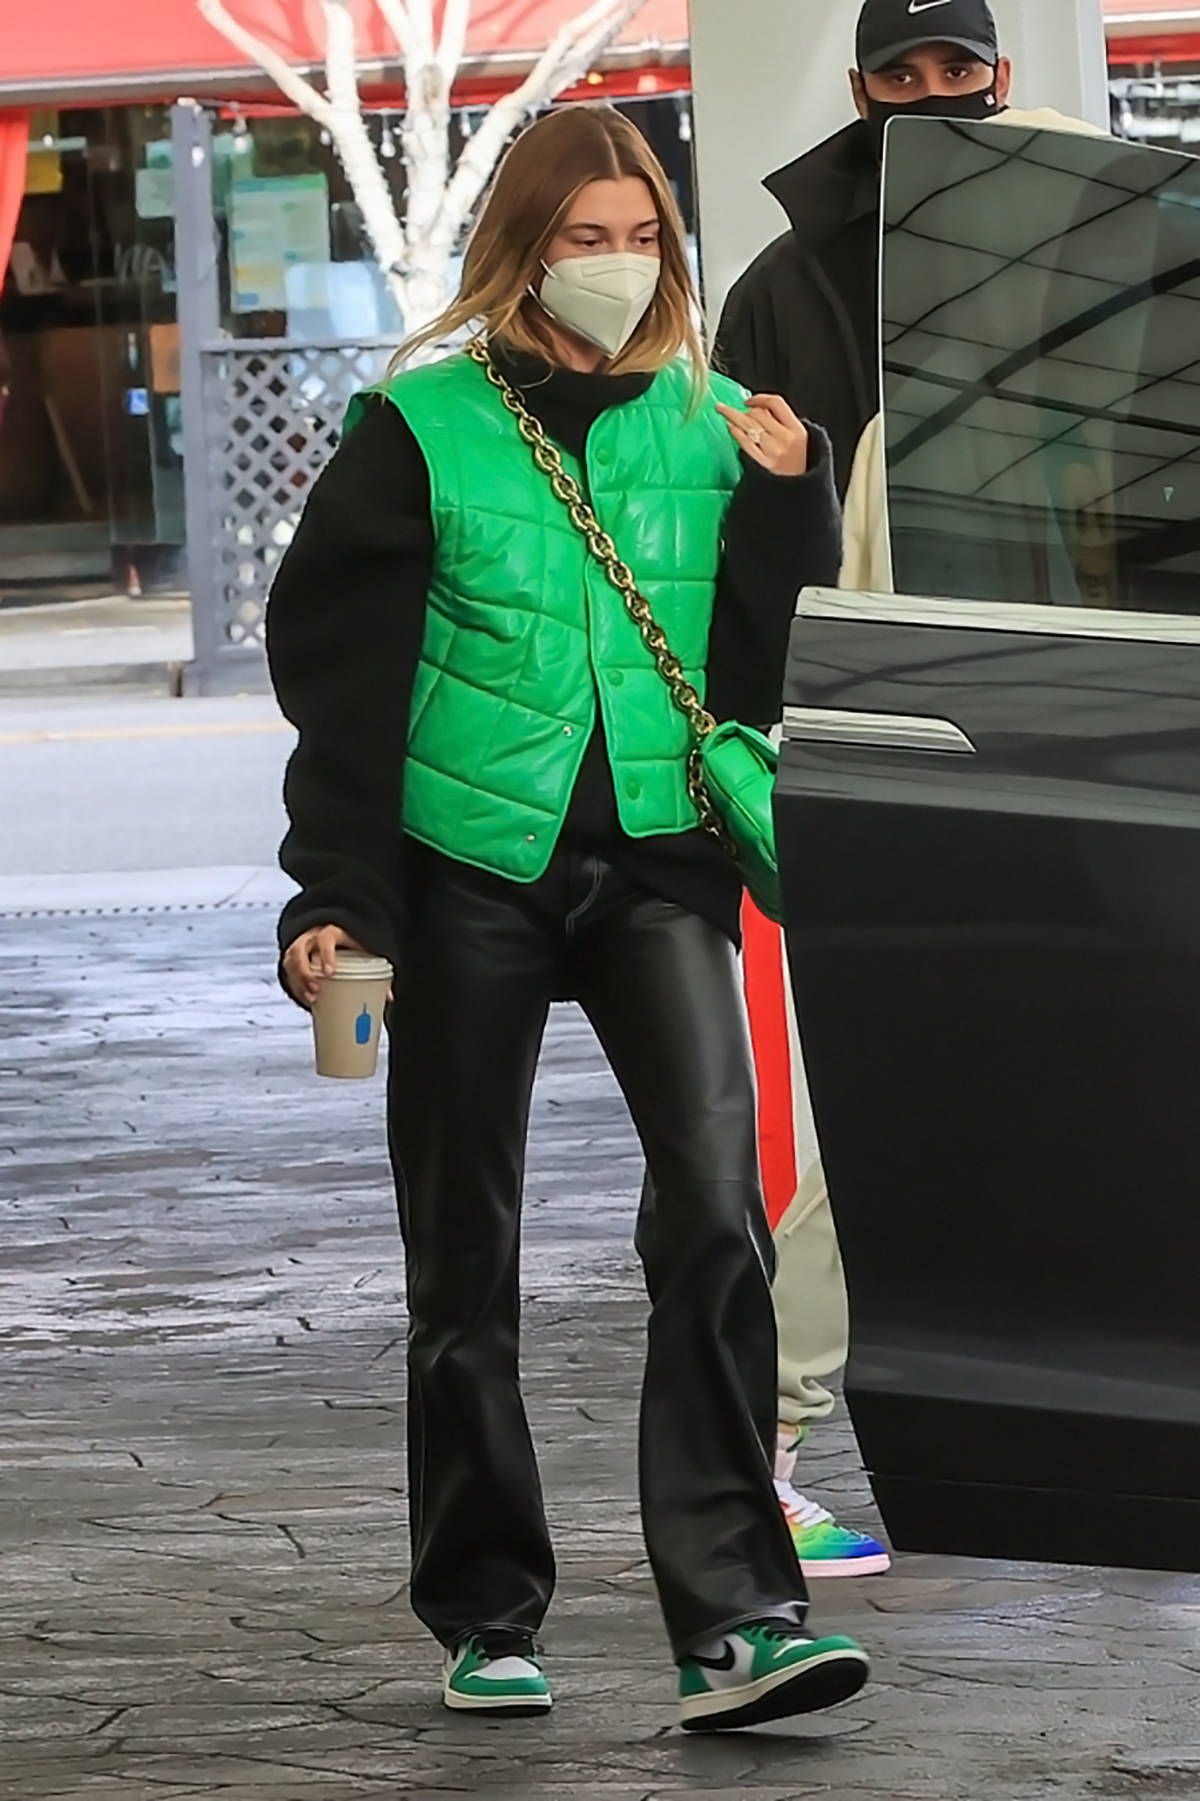 Hailey Bieber looks cool in a green sleeveless jacket while visiting a dermetologist with Justin Bieber in West Hollyood, California